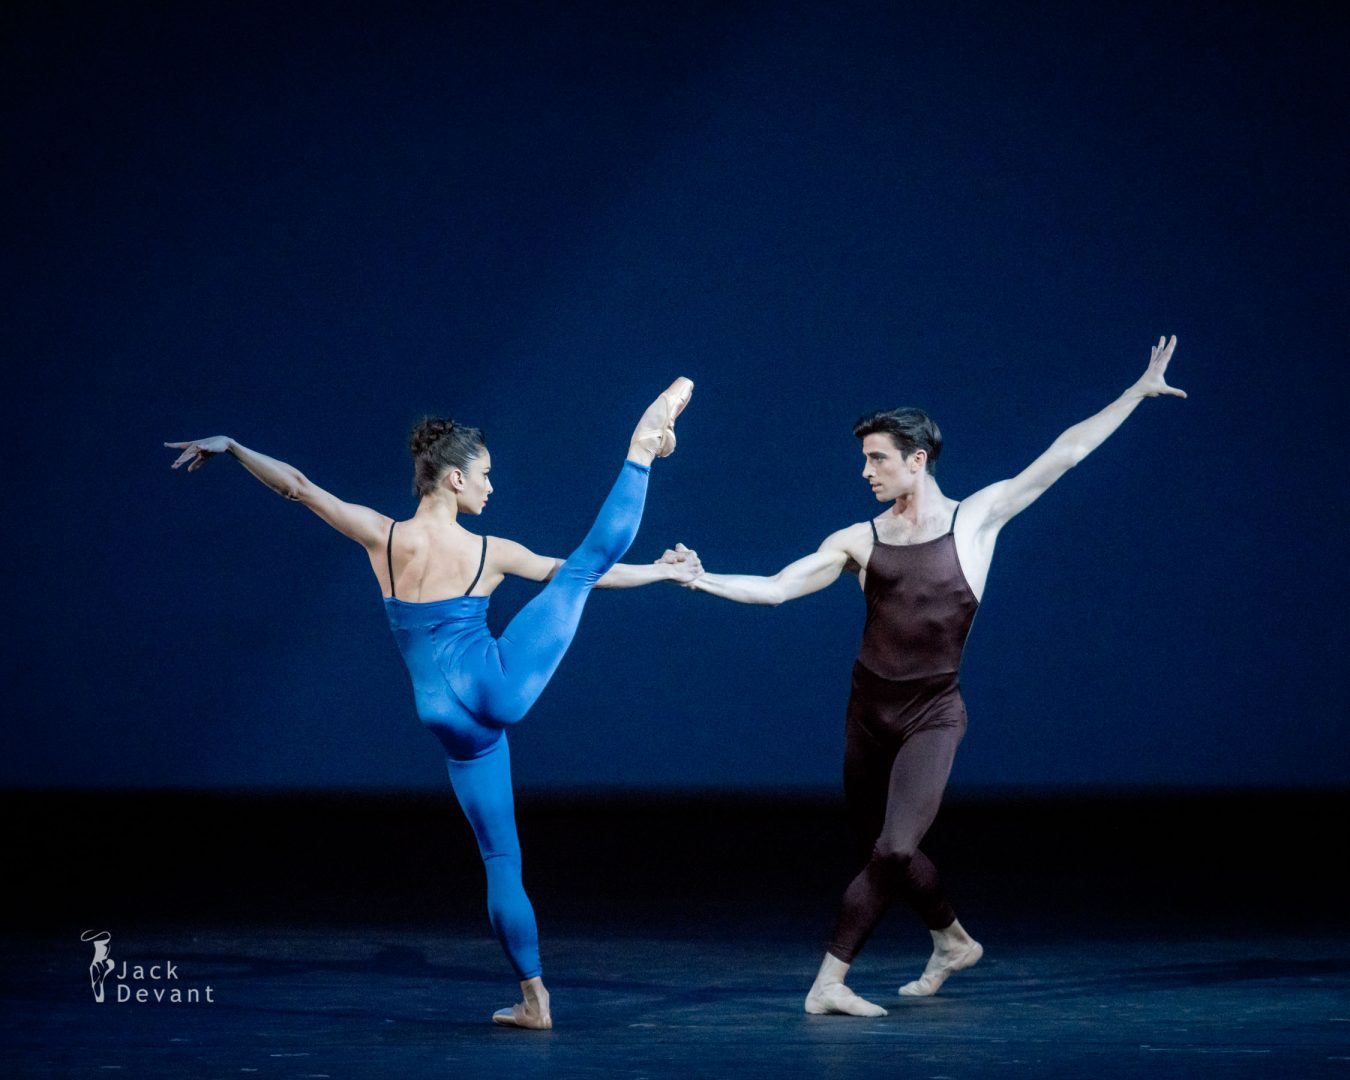 Dores Andre, Joseph Walsh in Variations for Two Couples 5